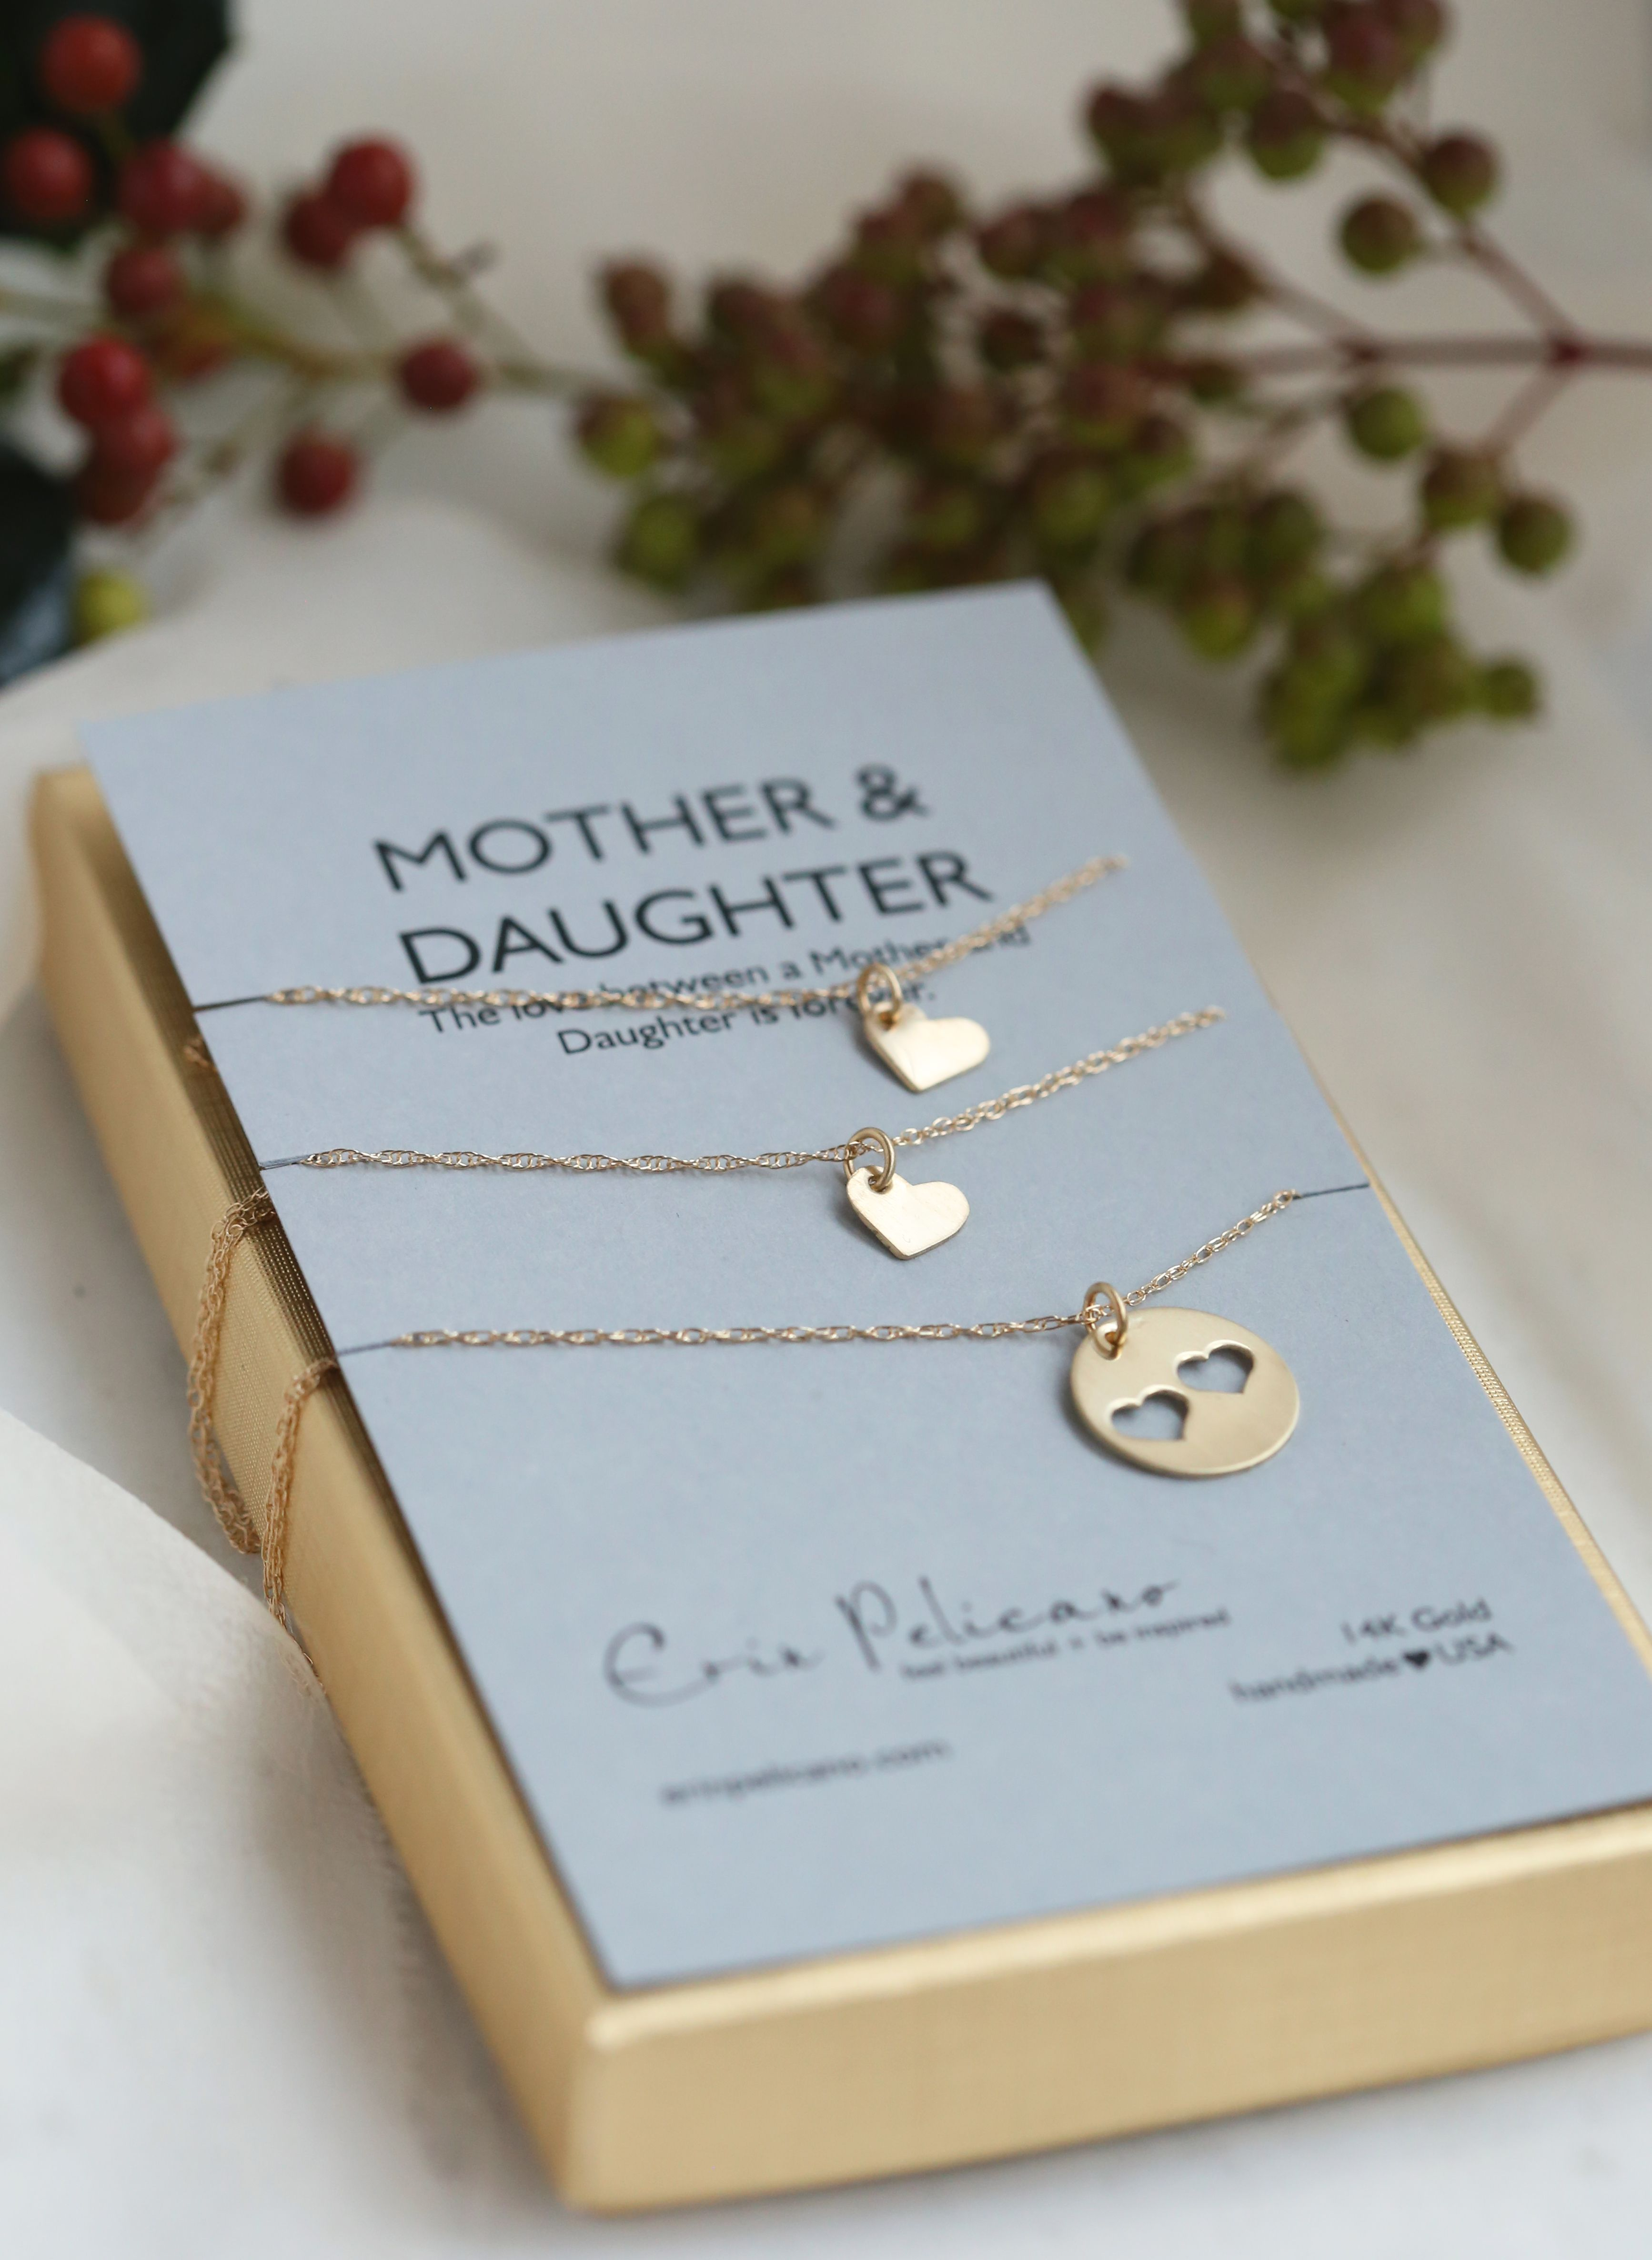 Christmas Gift Ideas For Mom From Daughter.Mom Daughter Jewelry Wife Gift Handcrafted Meaningful